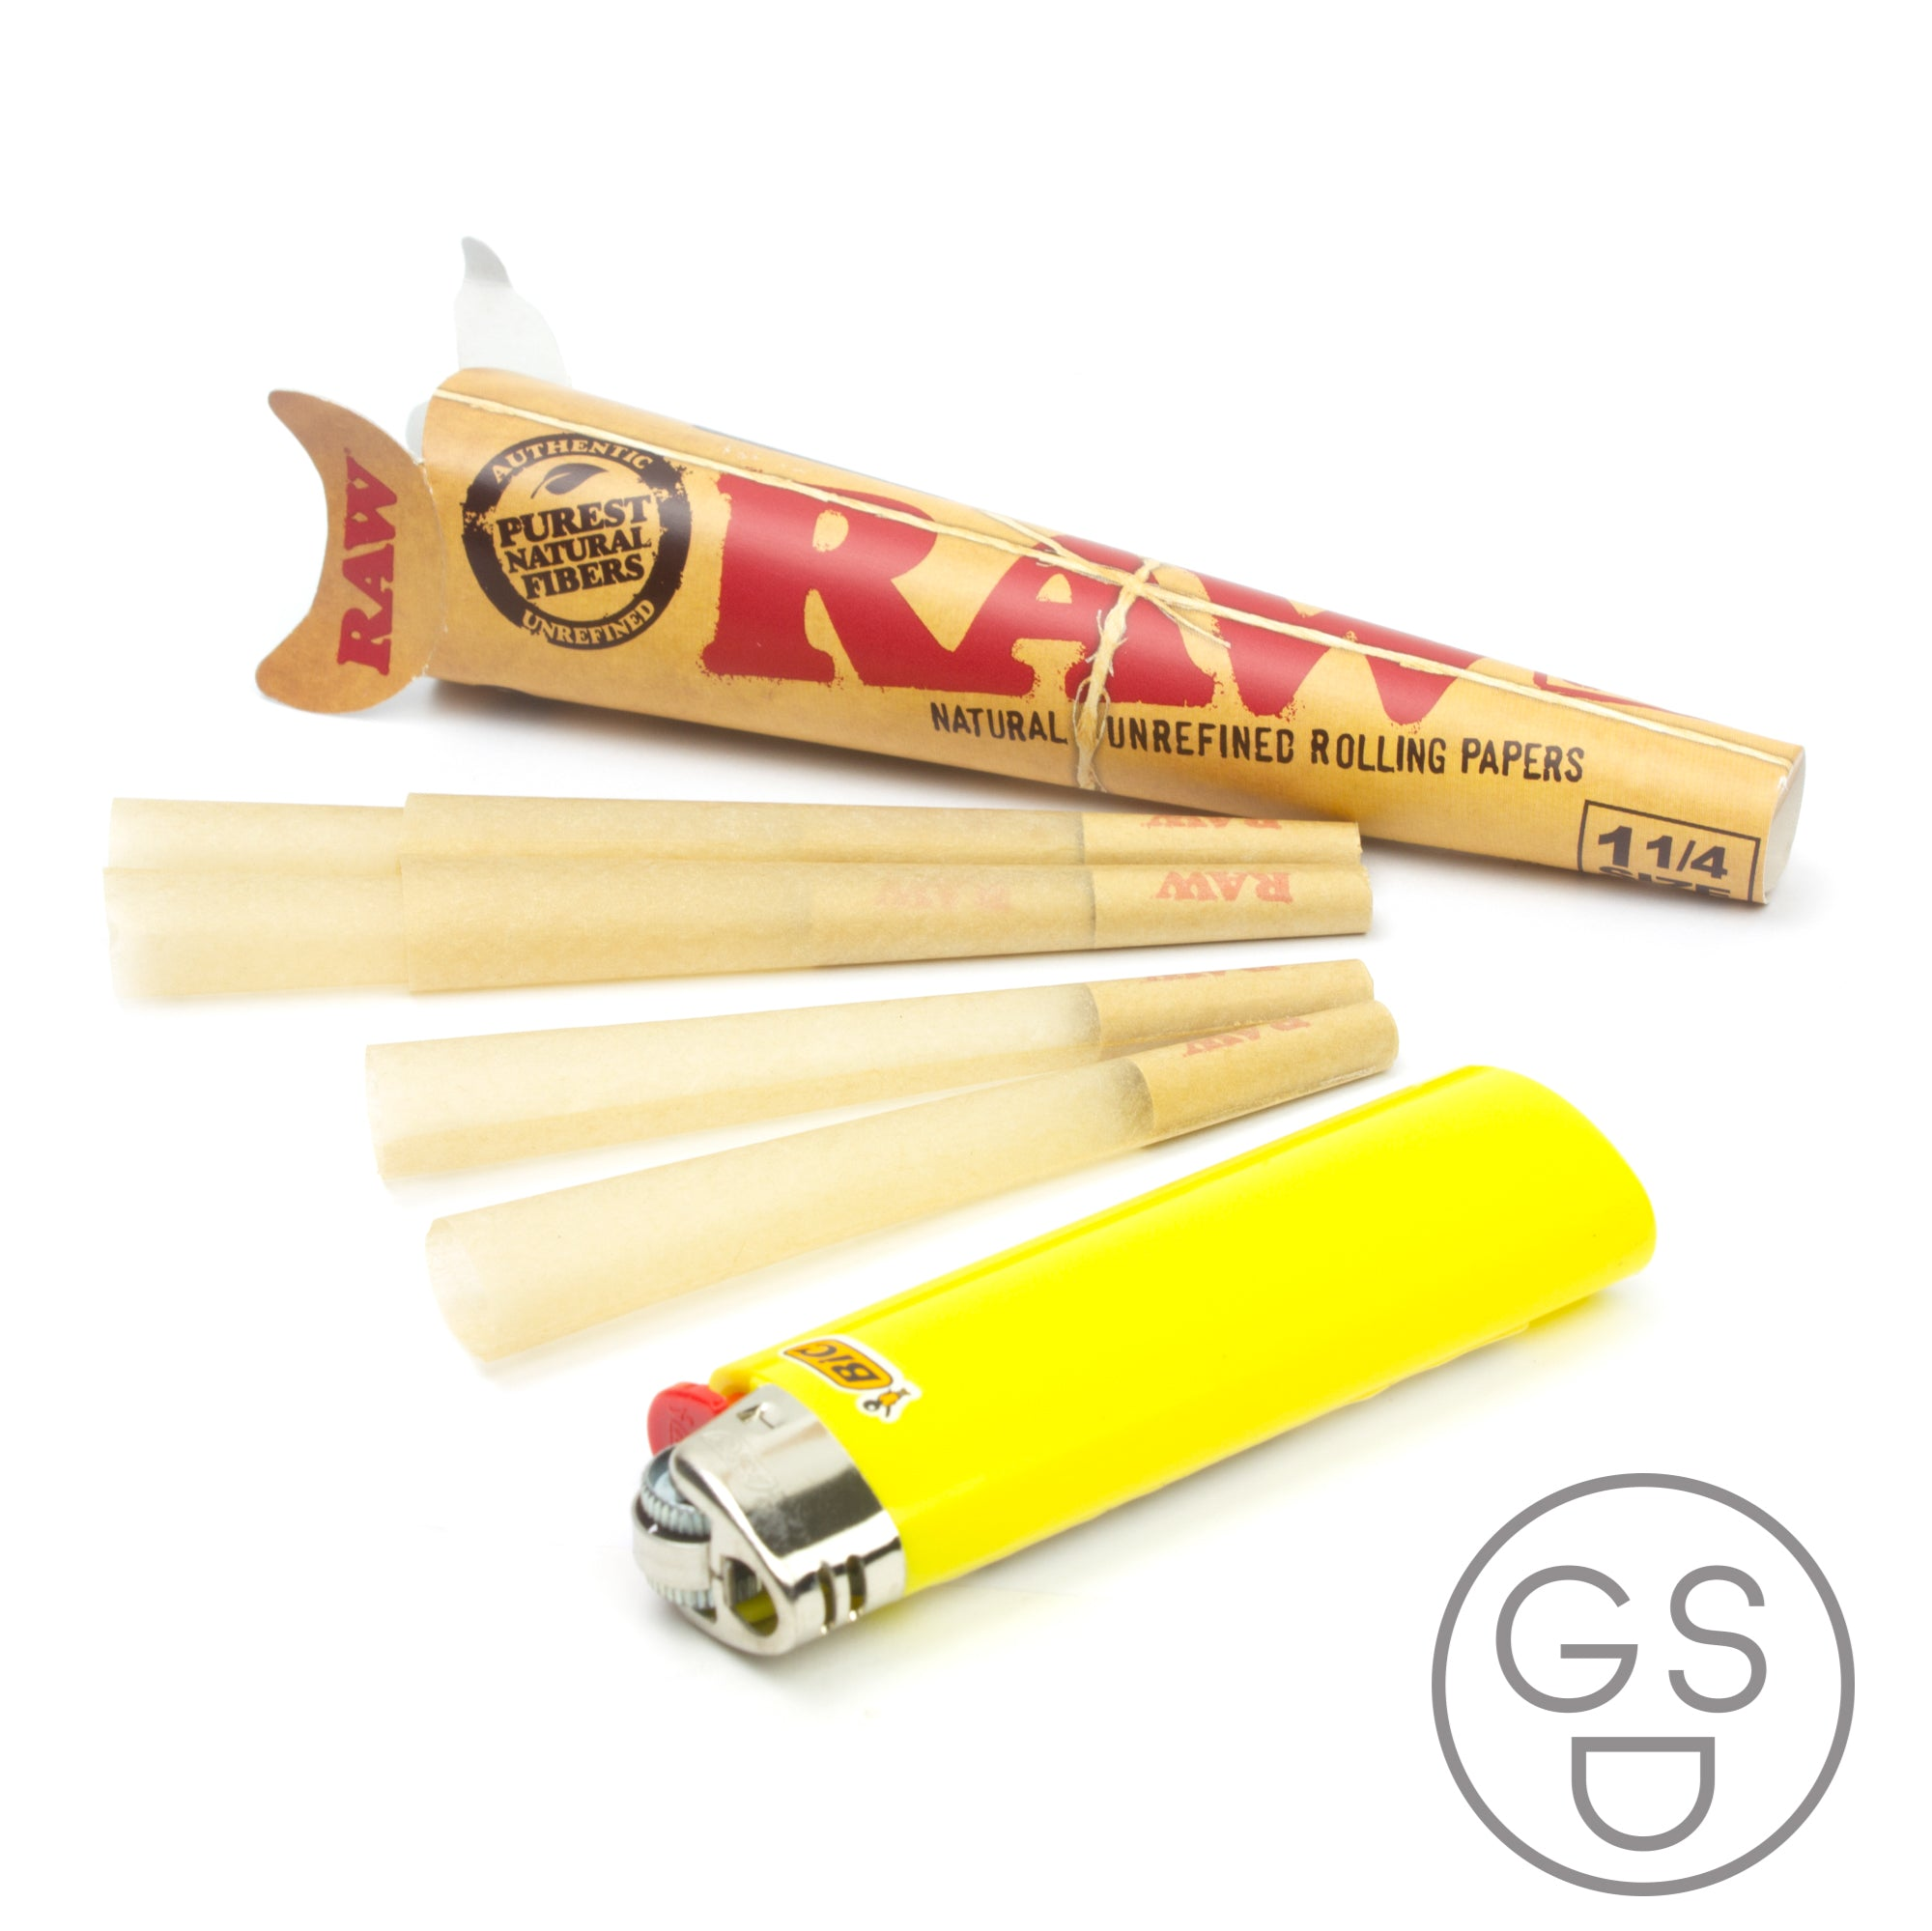 RAW 1 1/4 Cones - 6 Pack